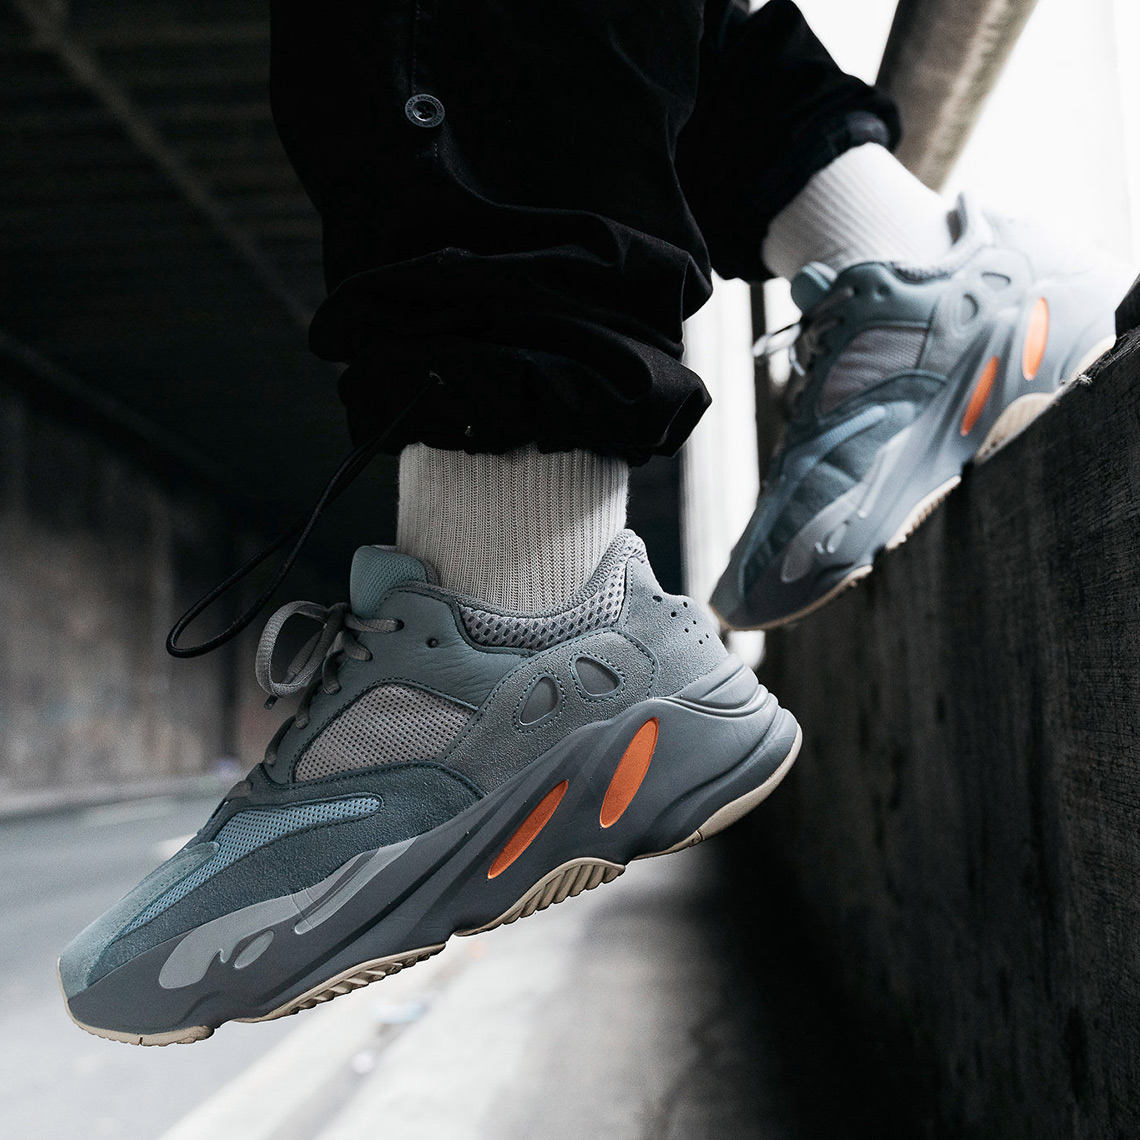 premium selection 575f5 5a37a adidas Yeezy 700